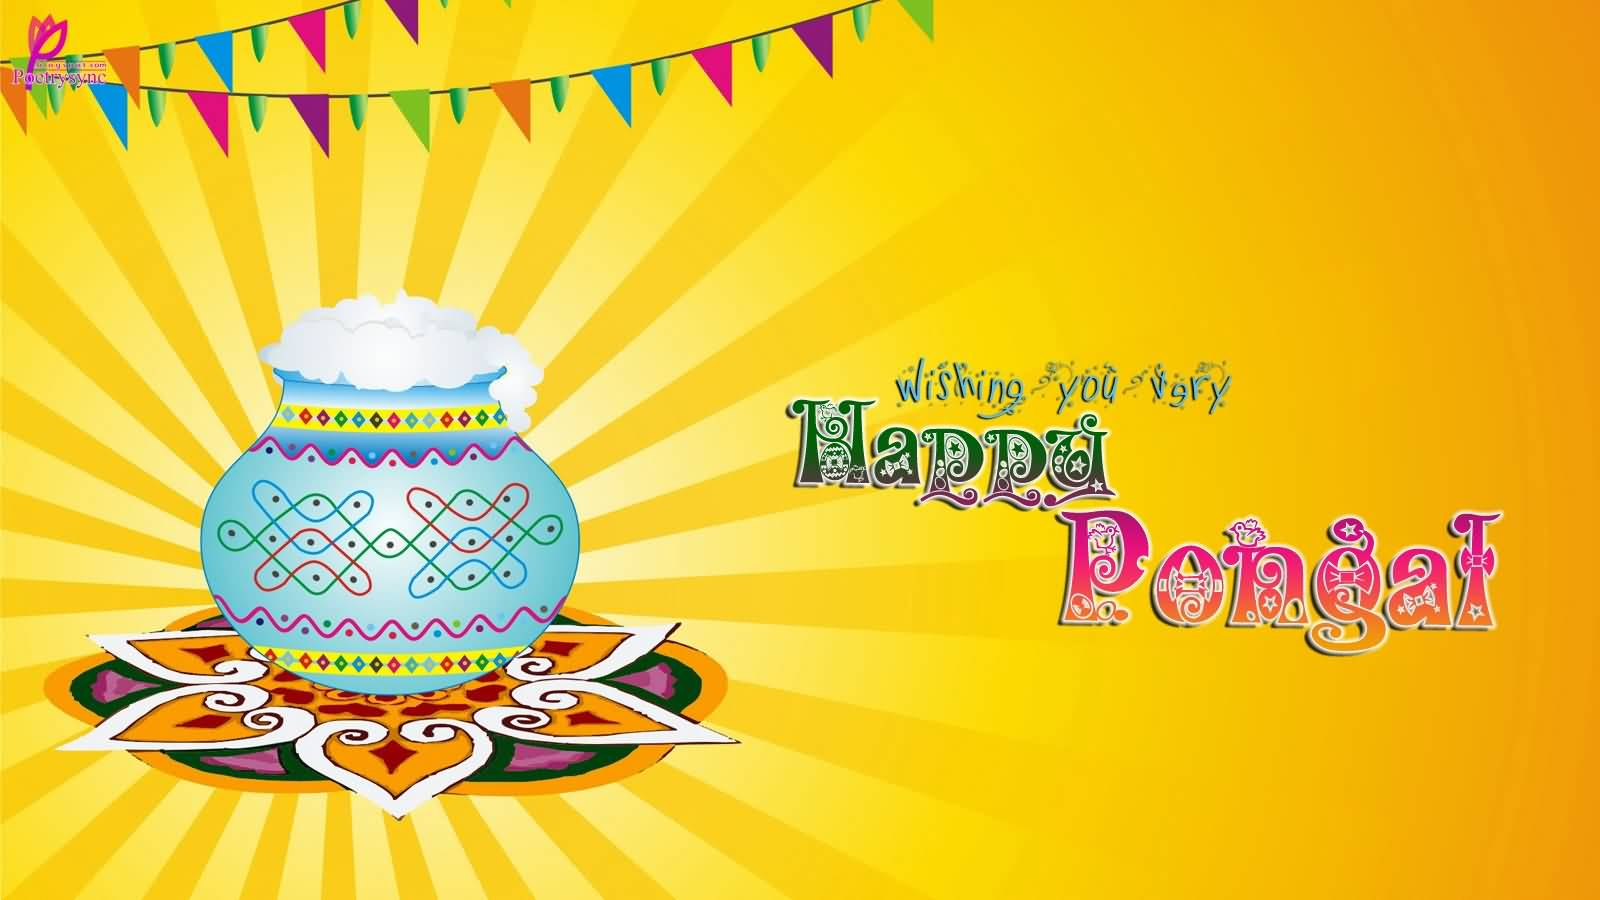 35 adorable pongal 2017 wish pictures and images wishing you very happy pongal greeting card m4hsunfo Gallery